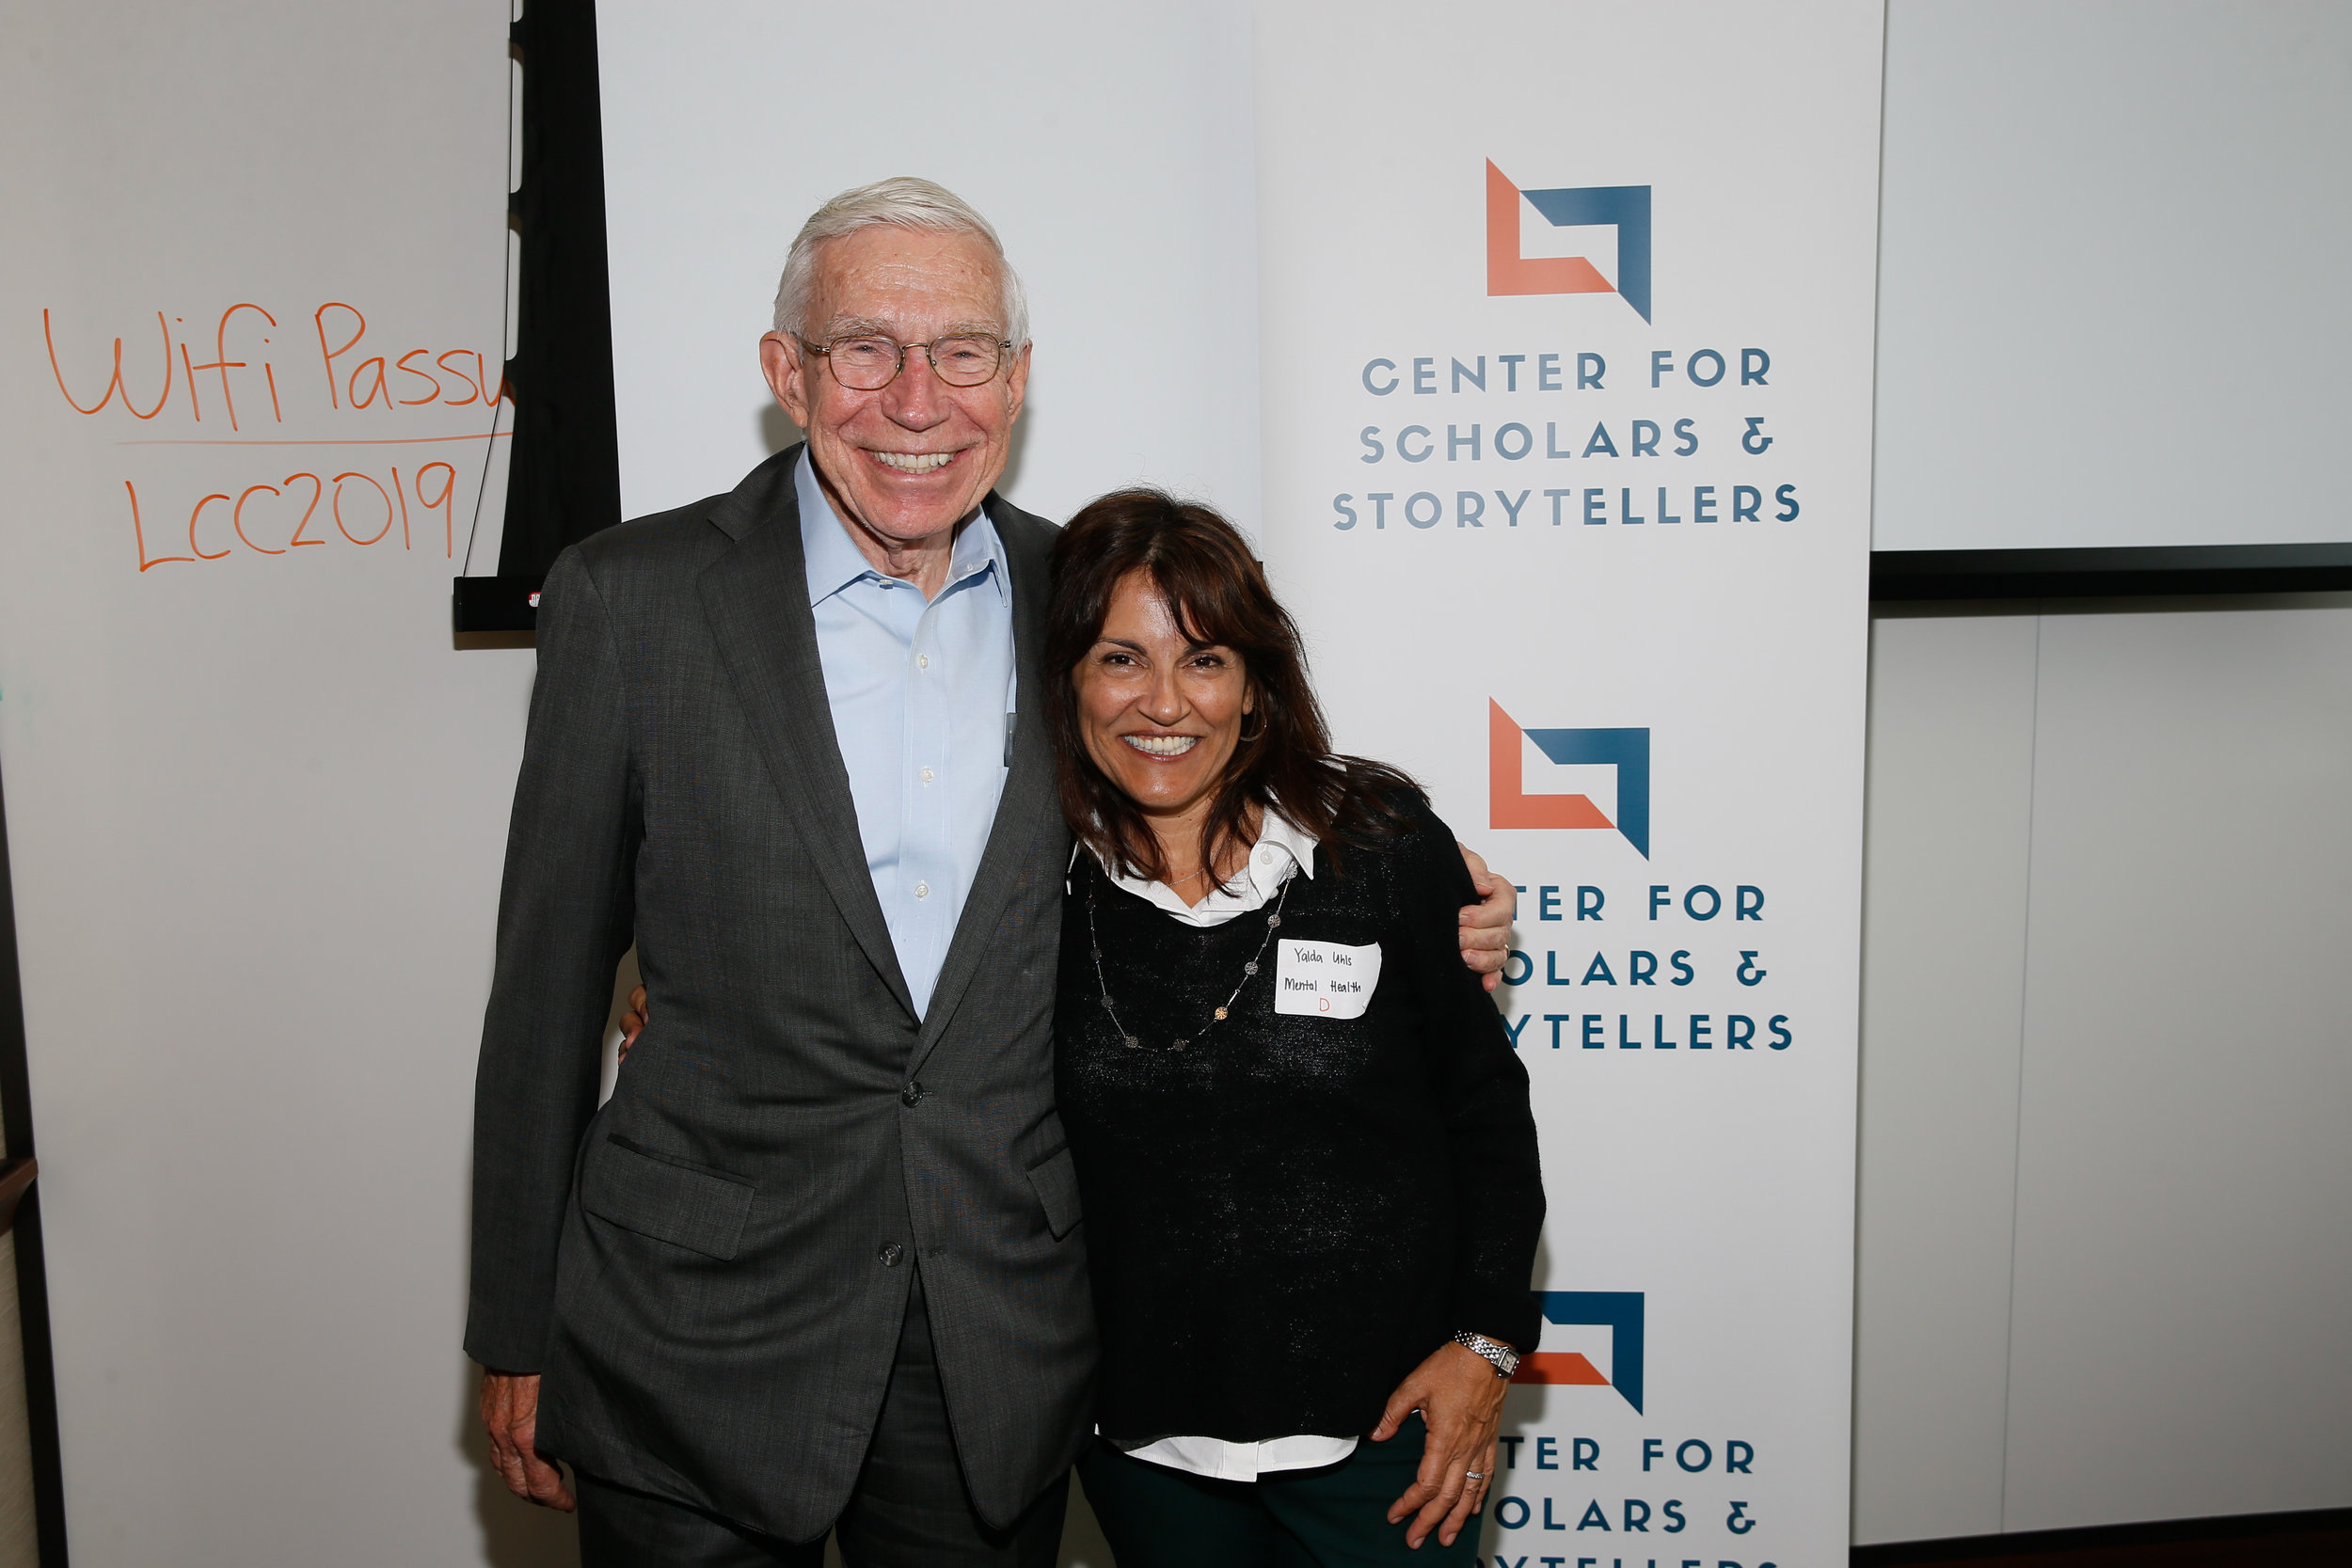 Business and Diplomat Frank Baxeter (left) with CSS Founder and Executive Director Dr. Yalda T. Uhls (right).